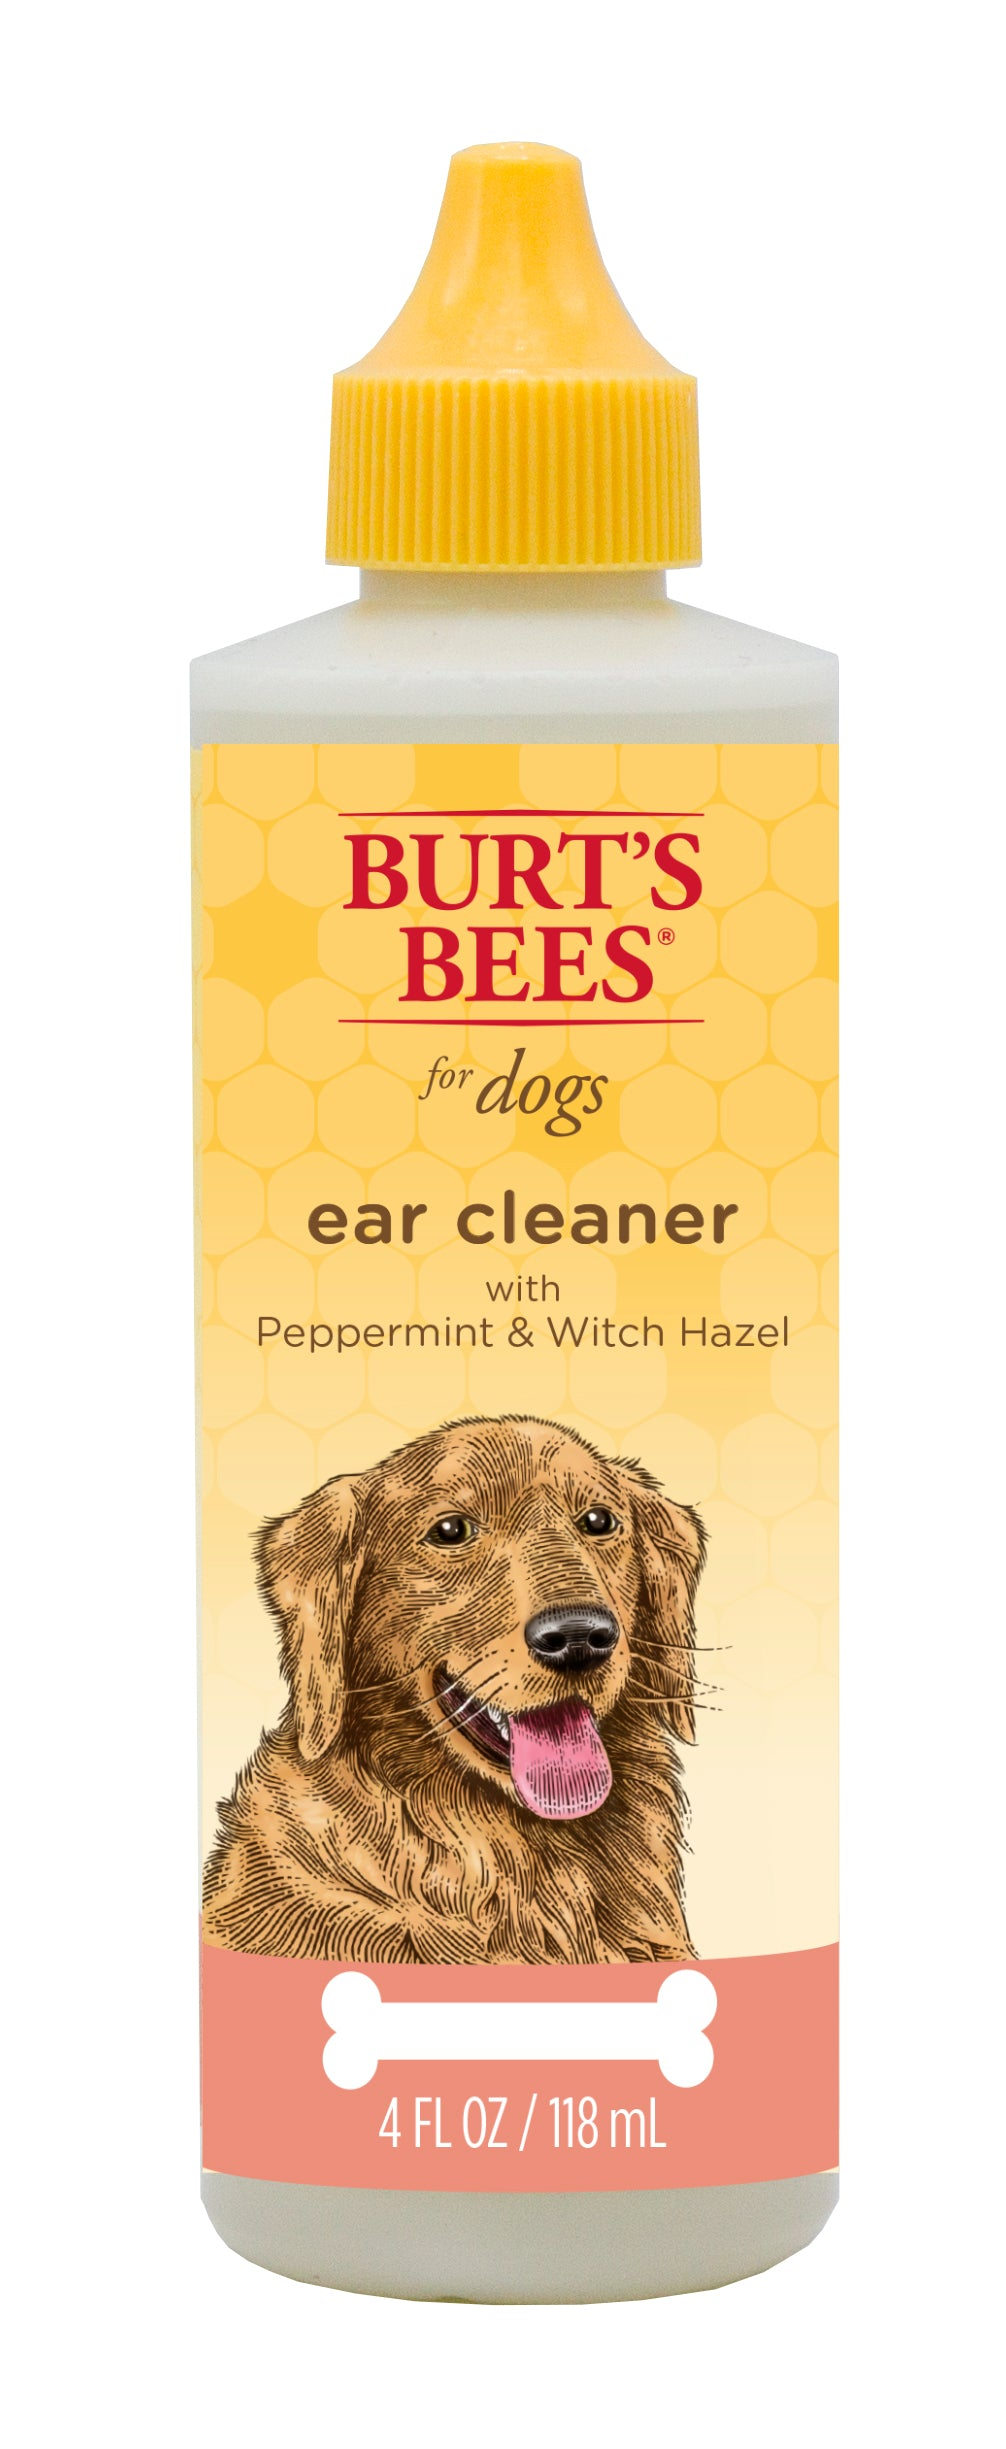 Burt's Bees Ear Cleaner with Peppermint and Witch Hazel